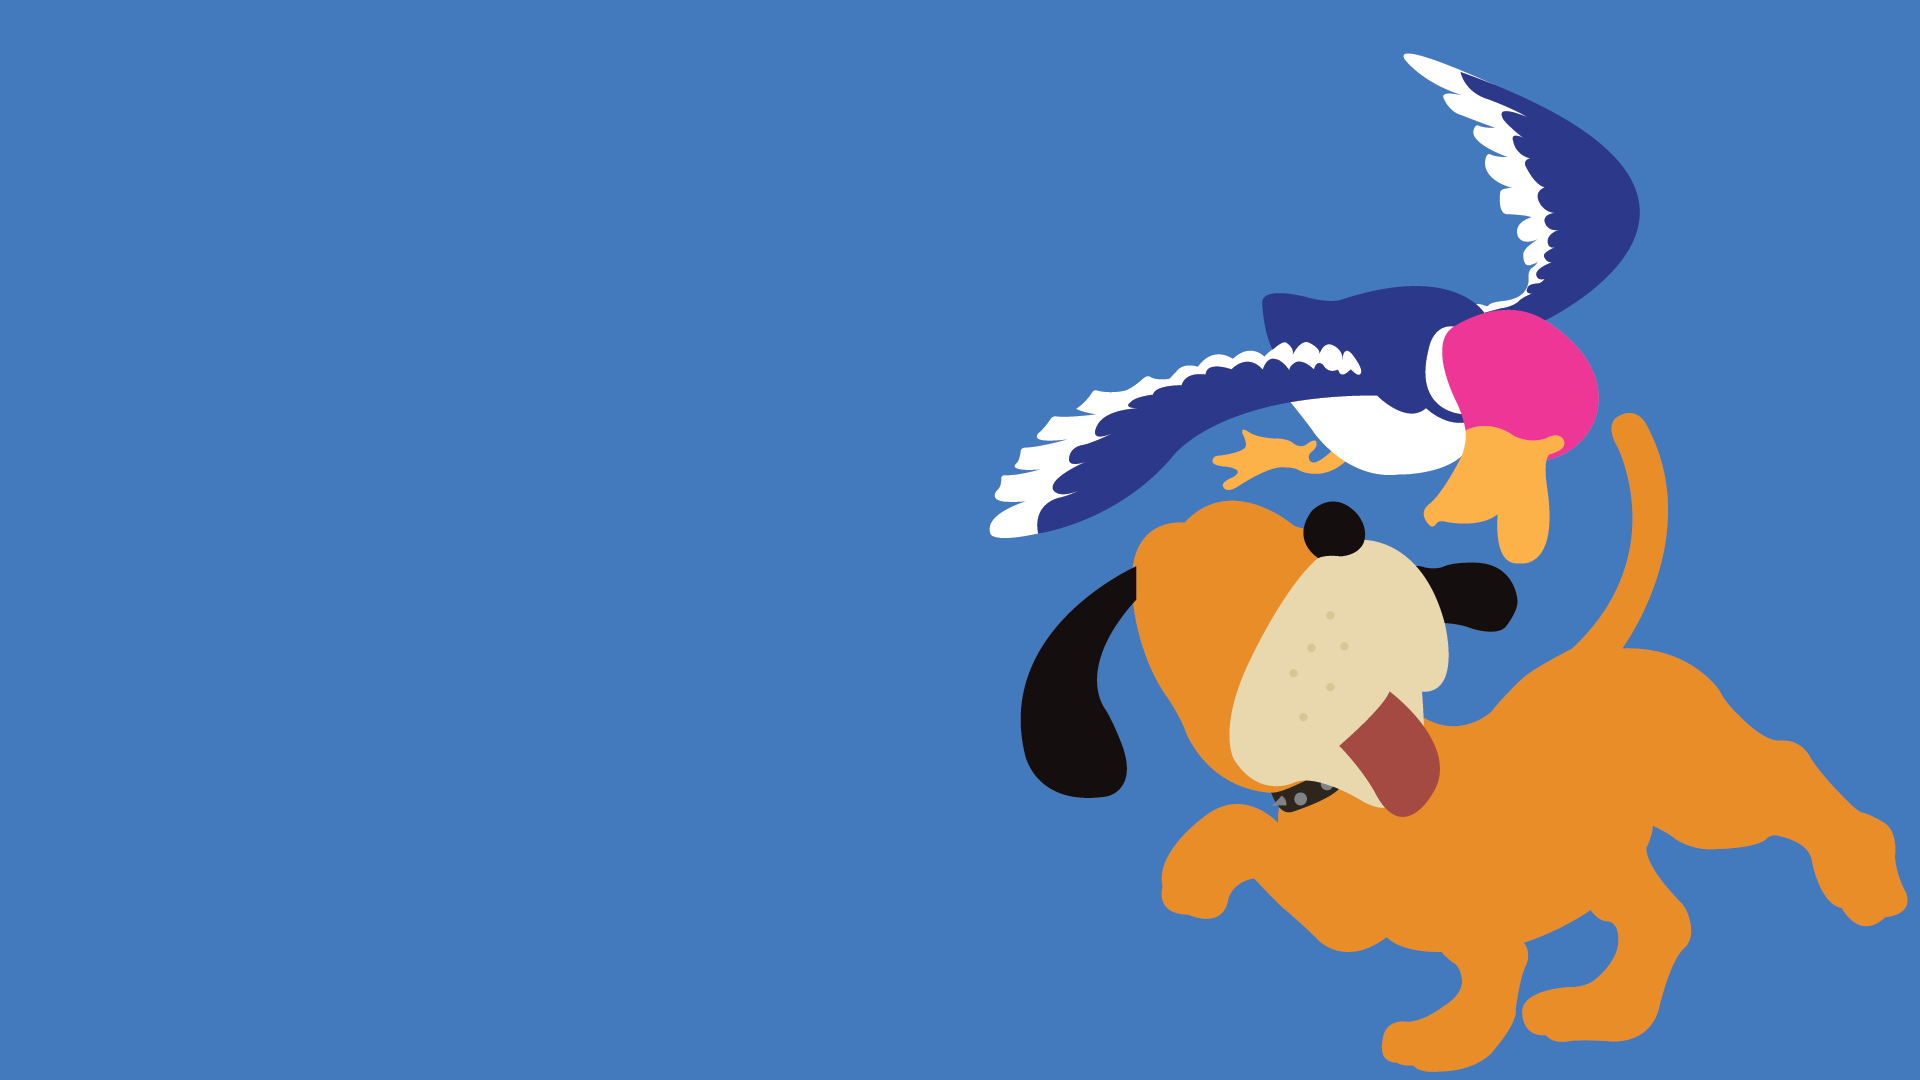 Duck Hunt Duo Wallpaper PlusPng.com  - Duck Hunting PNG HD